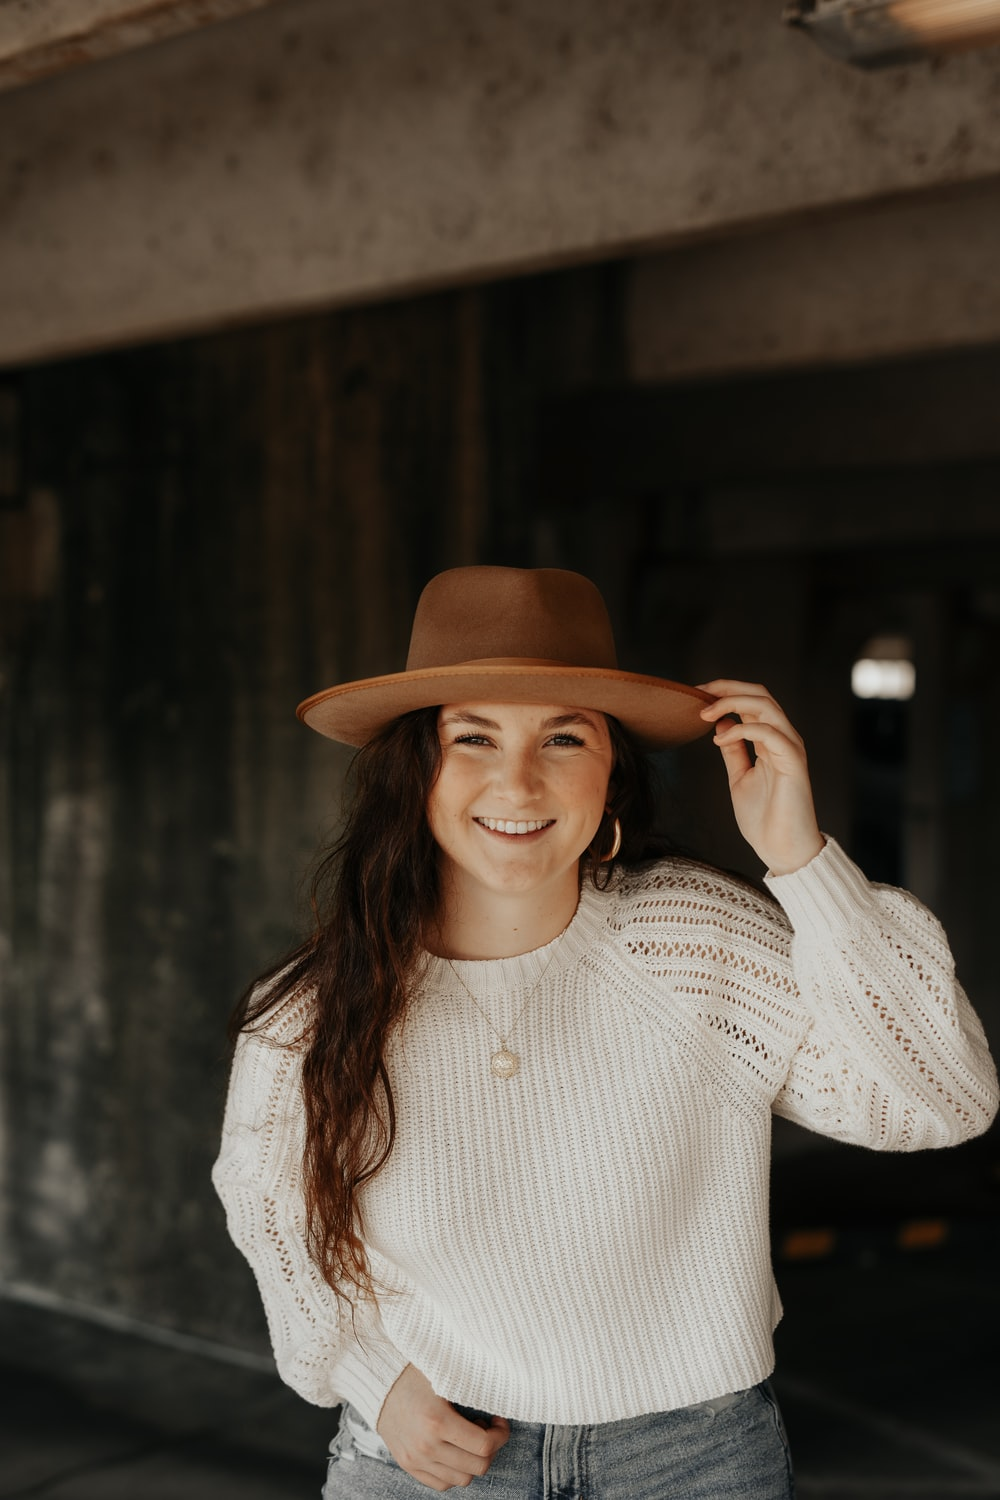 woman smiling and looking at the camera while holding brown hat